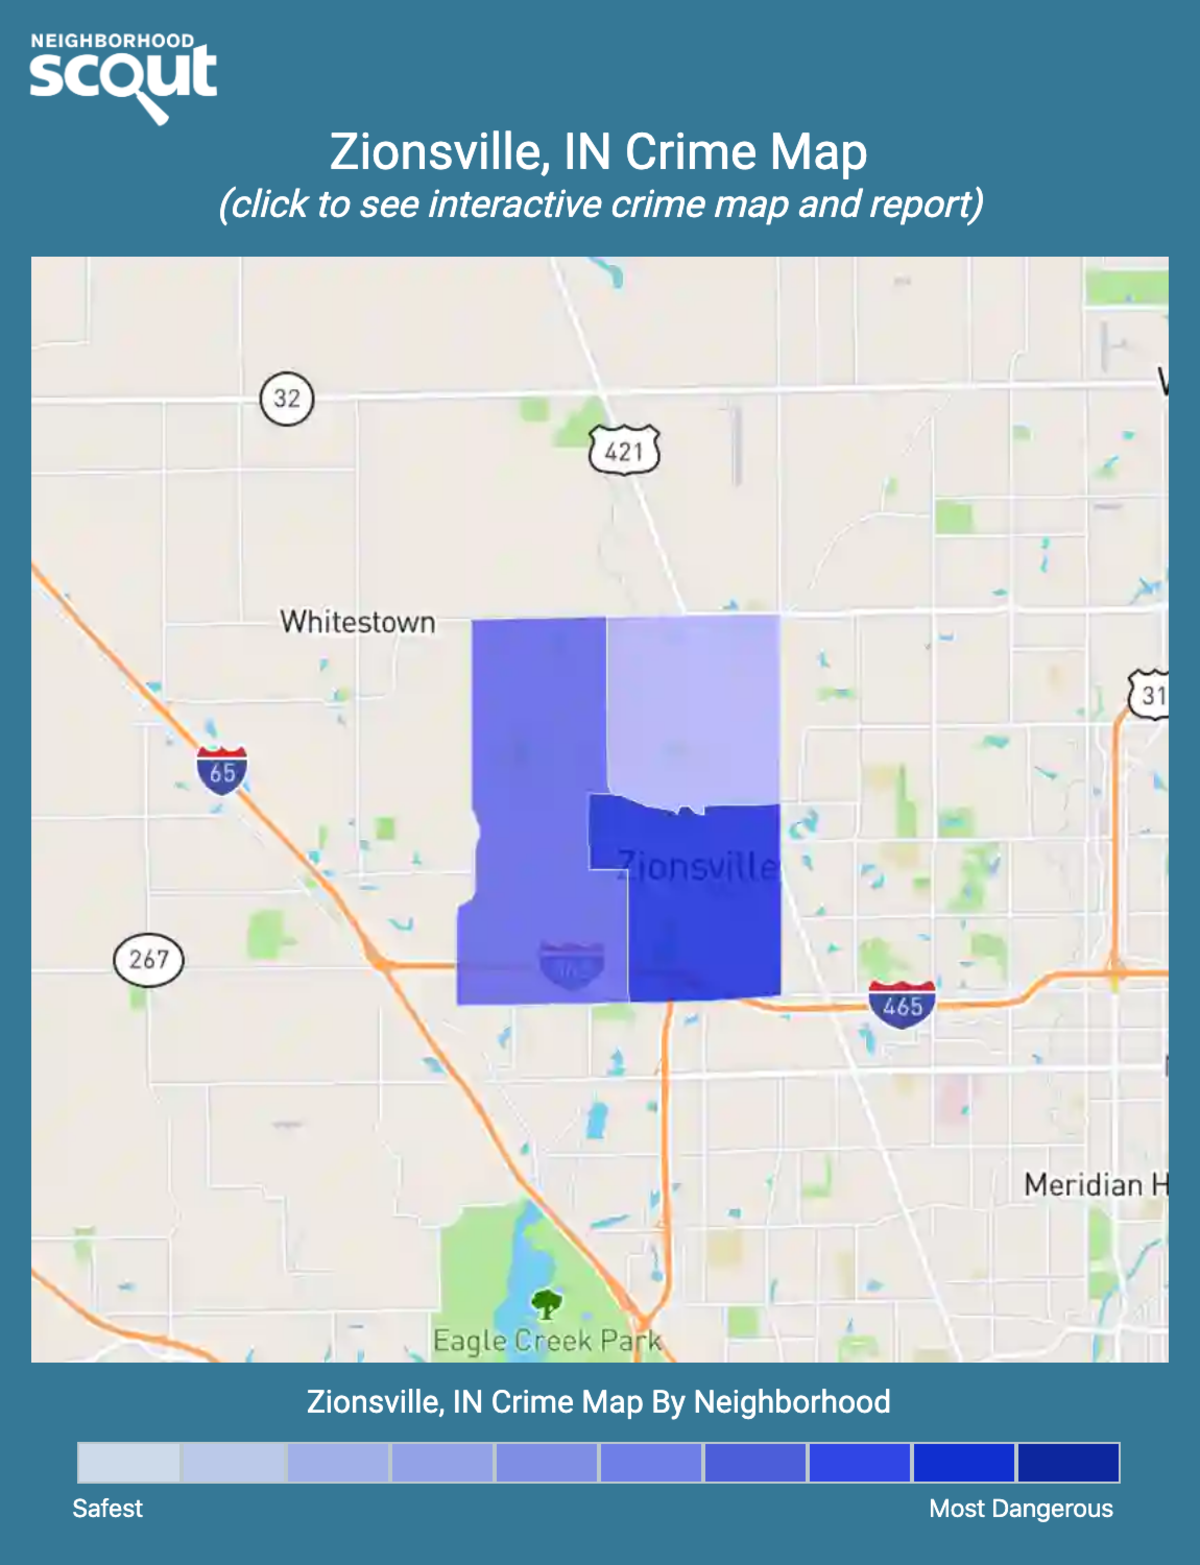 Zionsville, Indiana crime map